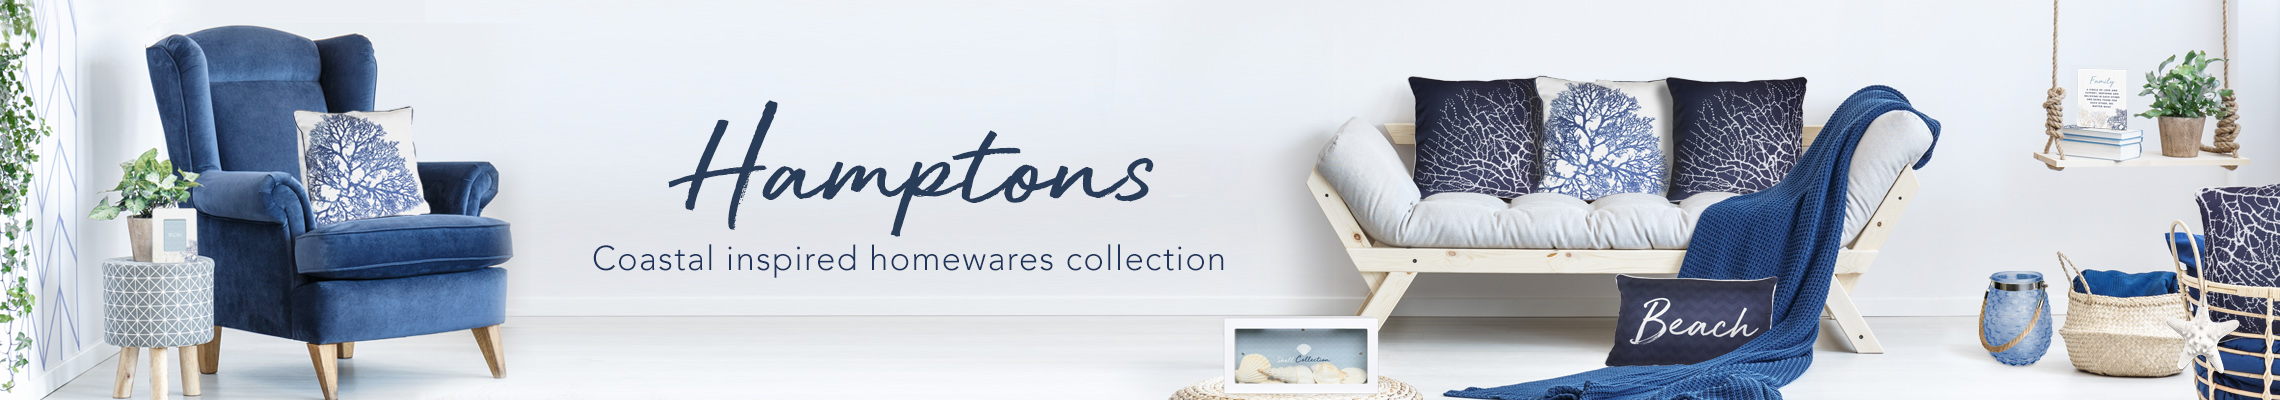 Shop our Hamptons collection!